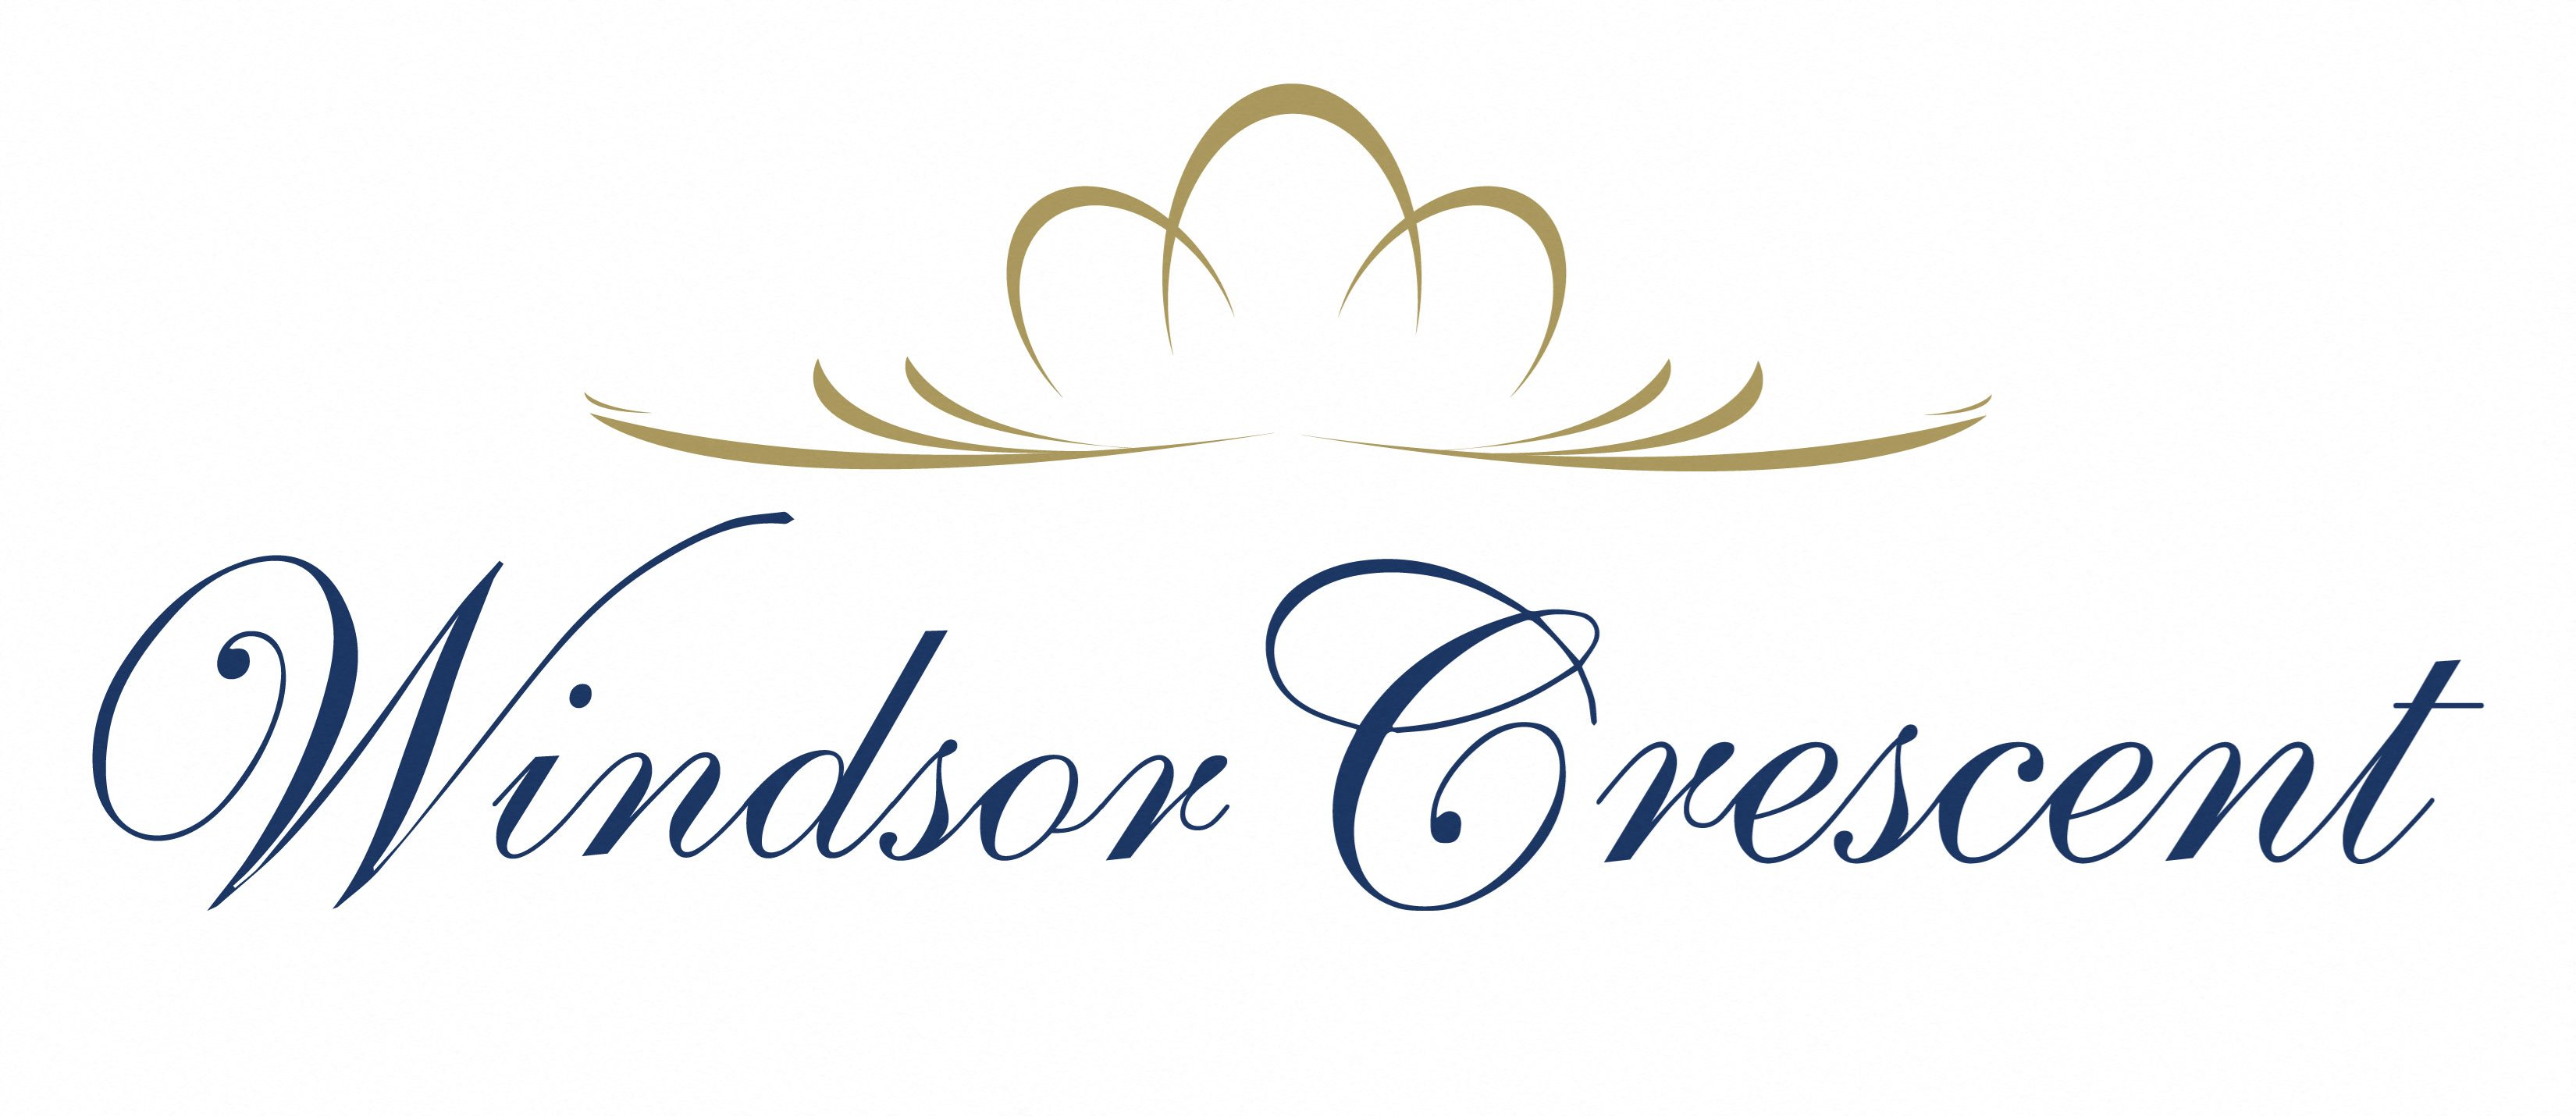 Windsor Crescent Property Logo 8